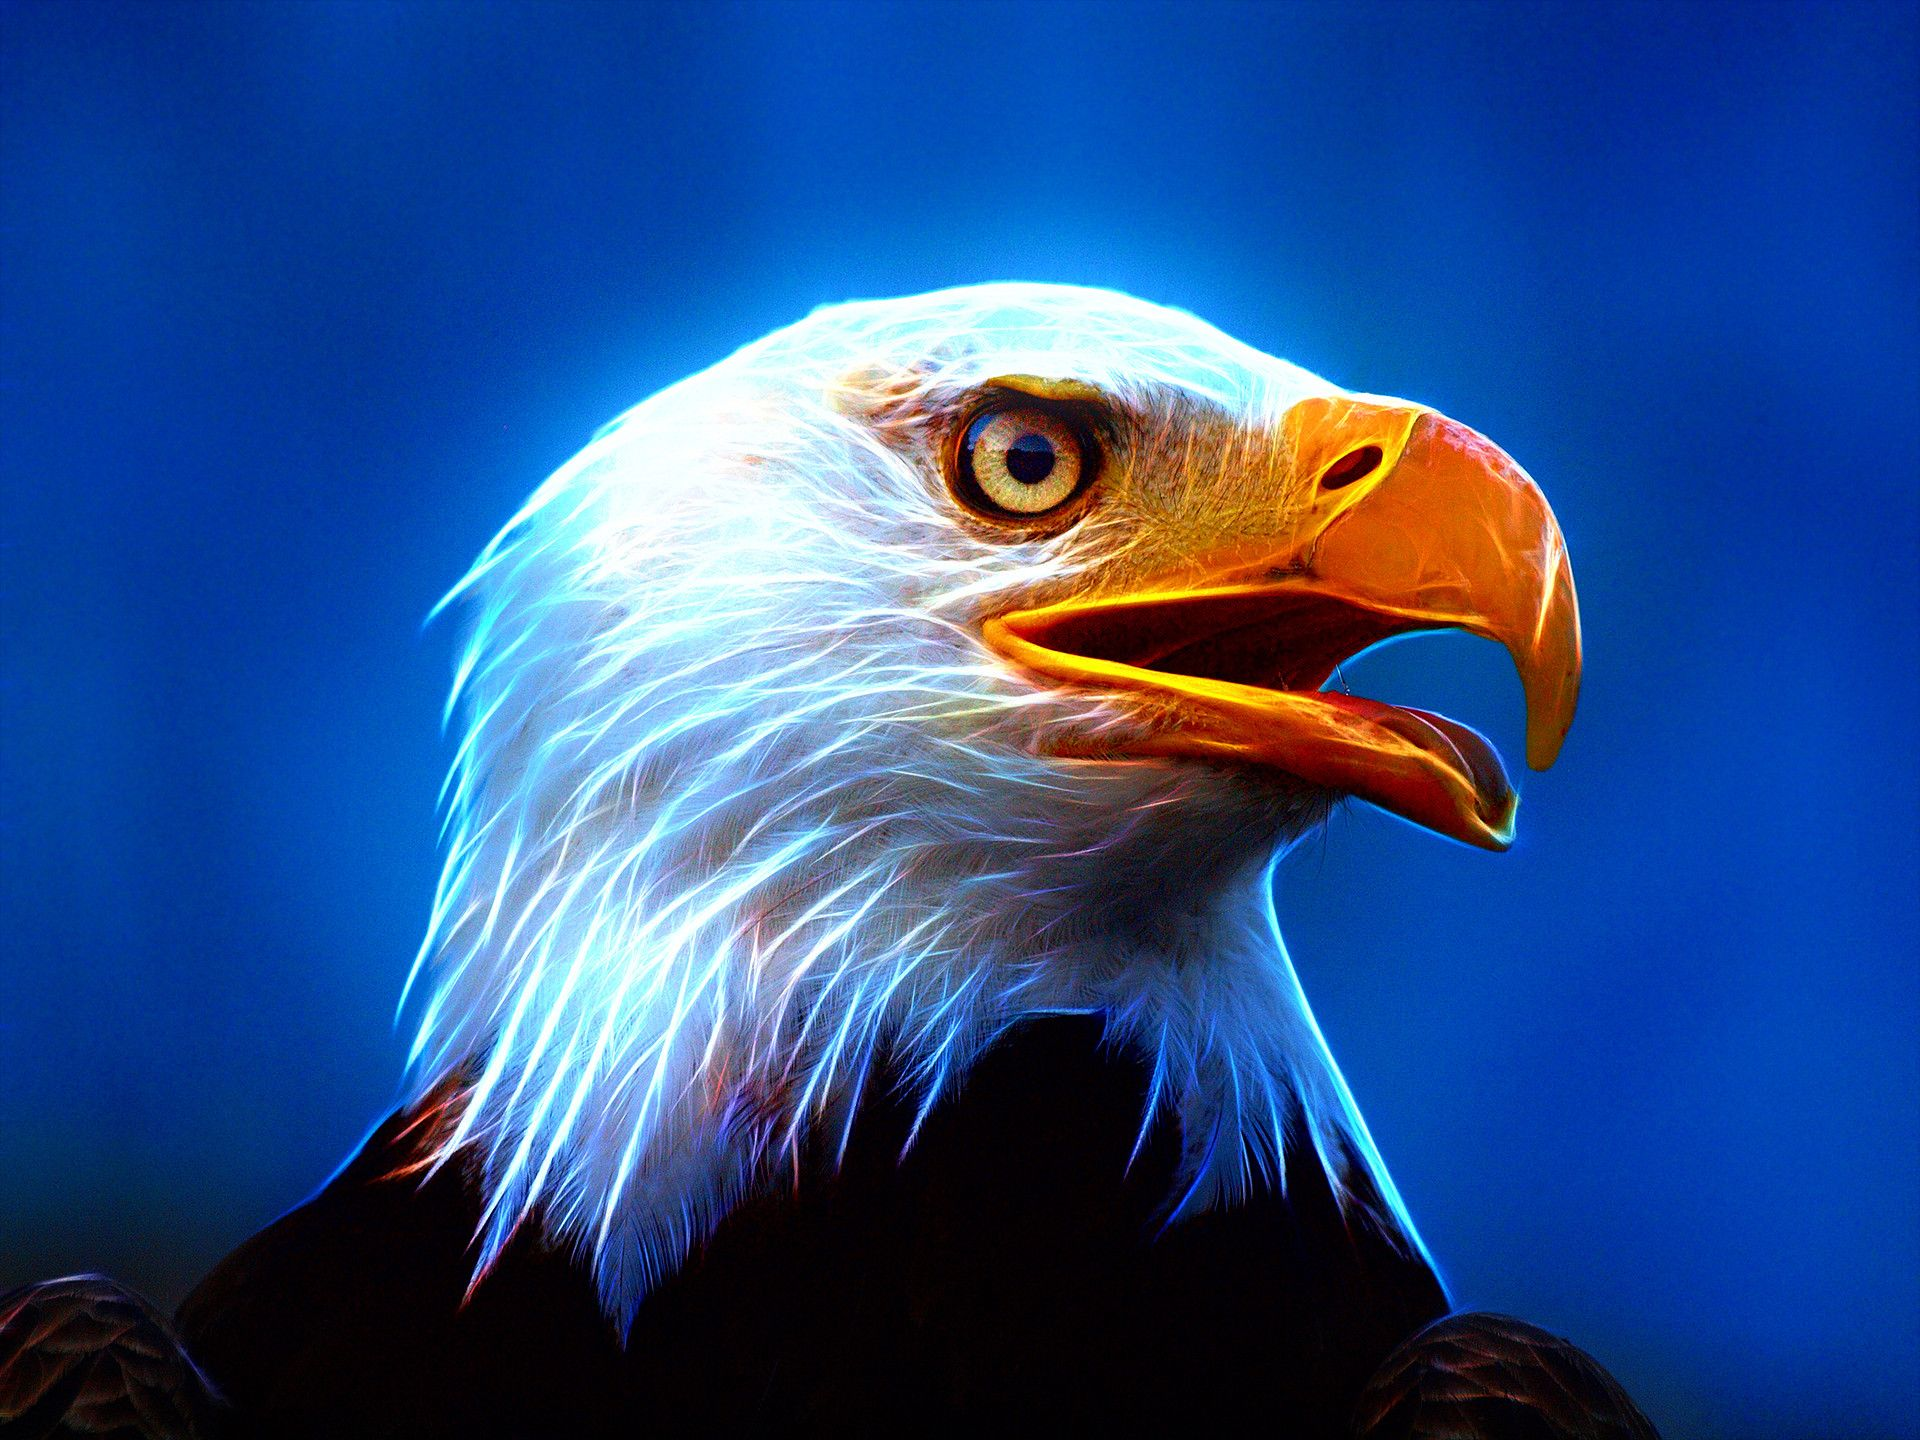 Neon Eagle Wallpapers - Top Free Neon Eagle Backgrounds ...